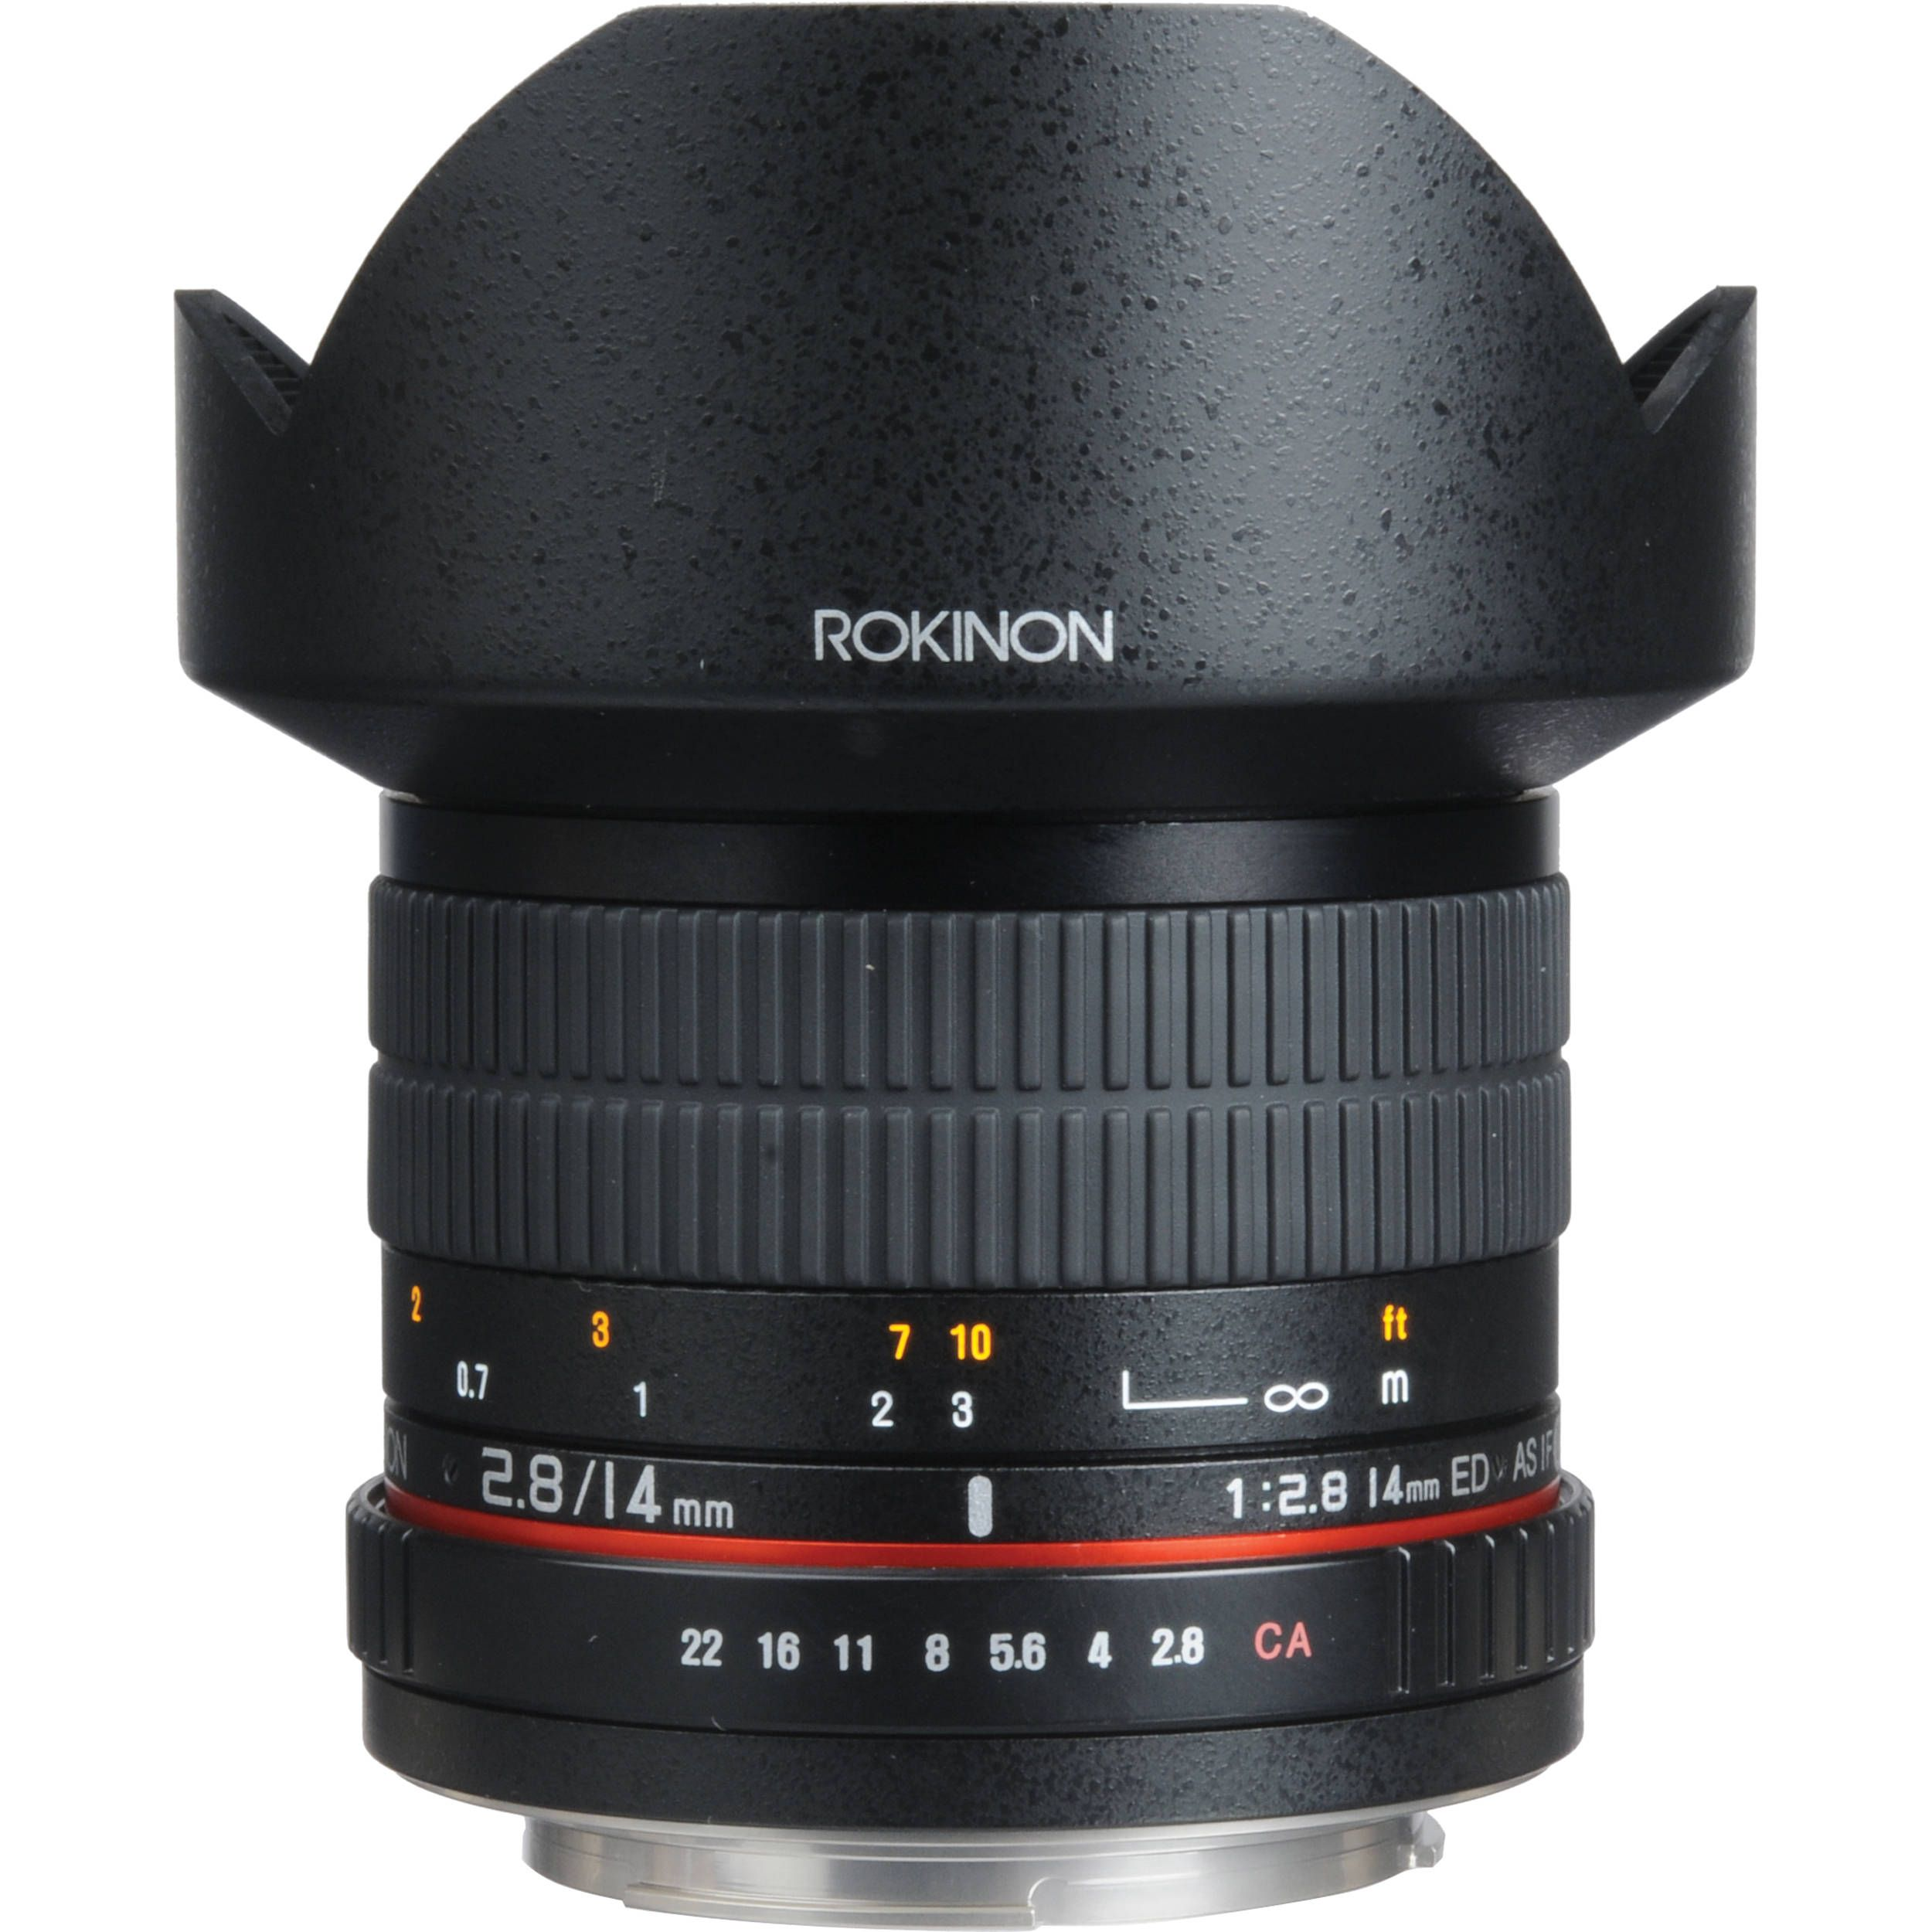 Rokinon 14mm F 2 8 If Ed Umc Lens For Canon Ef Best Wide Angle Lens Canon Lens Photography Gear